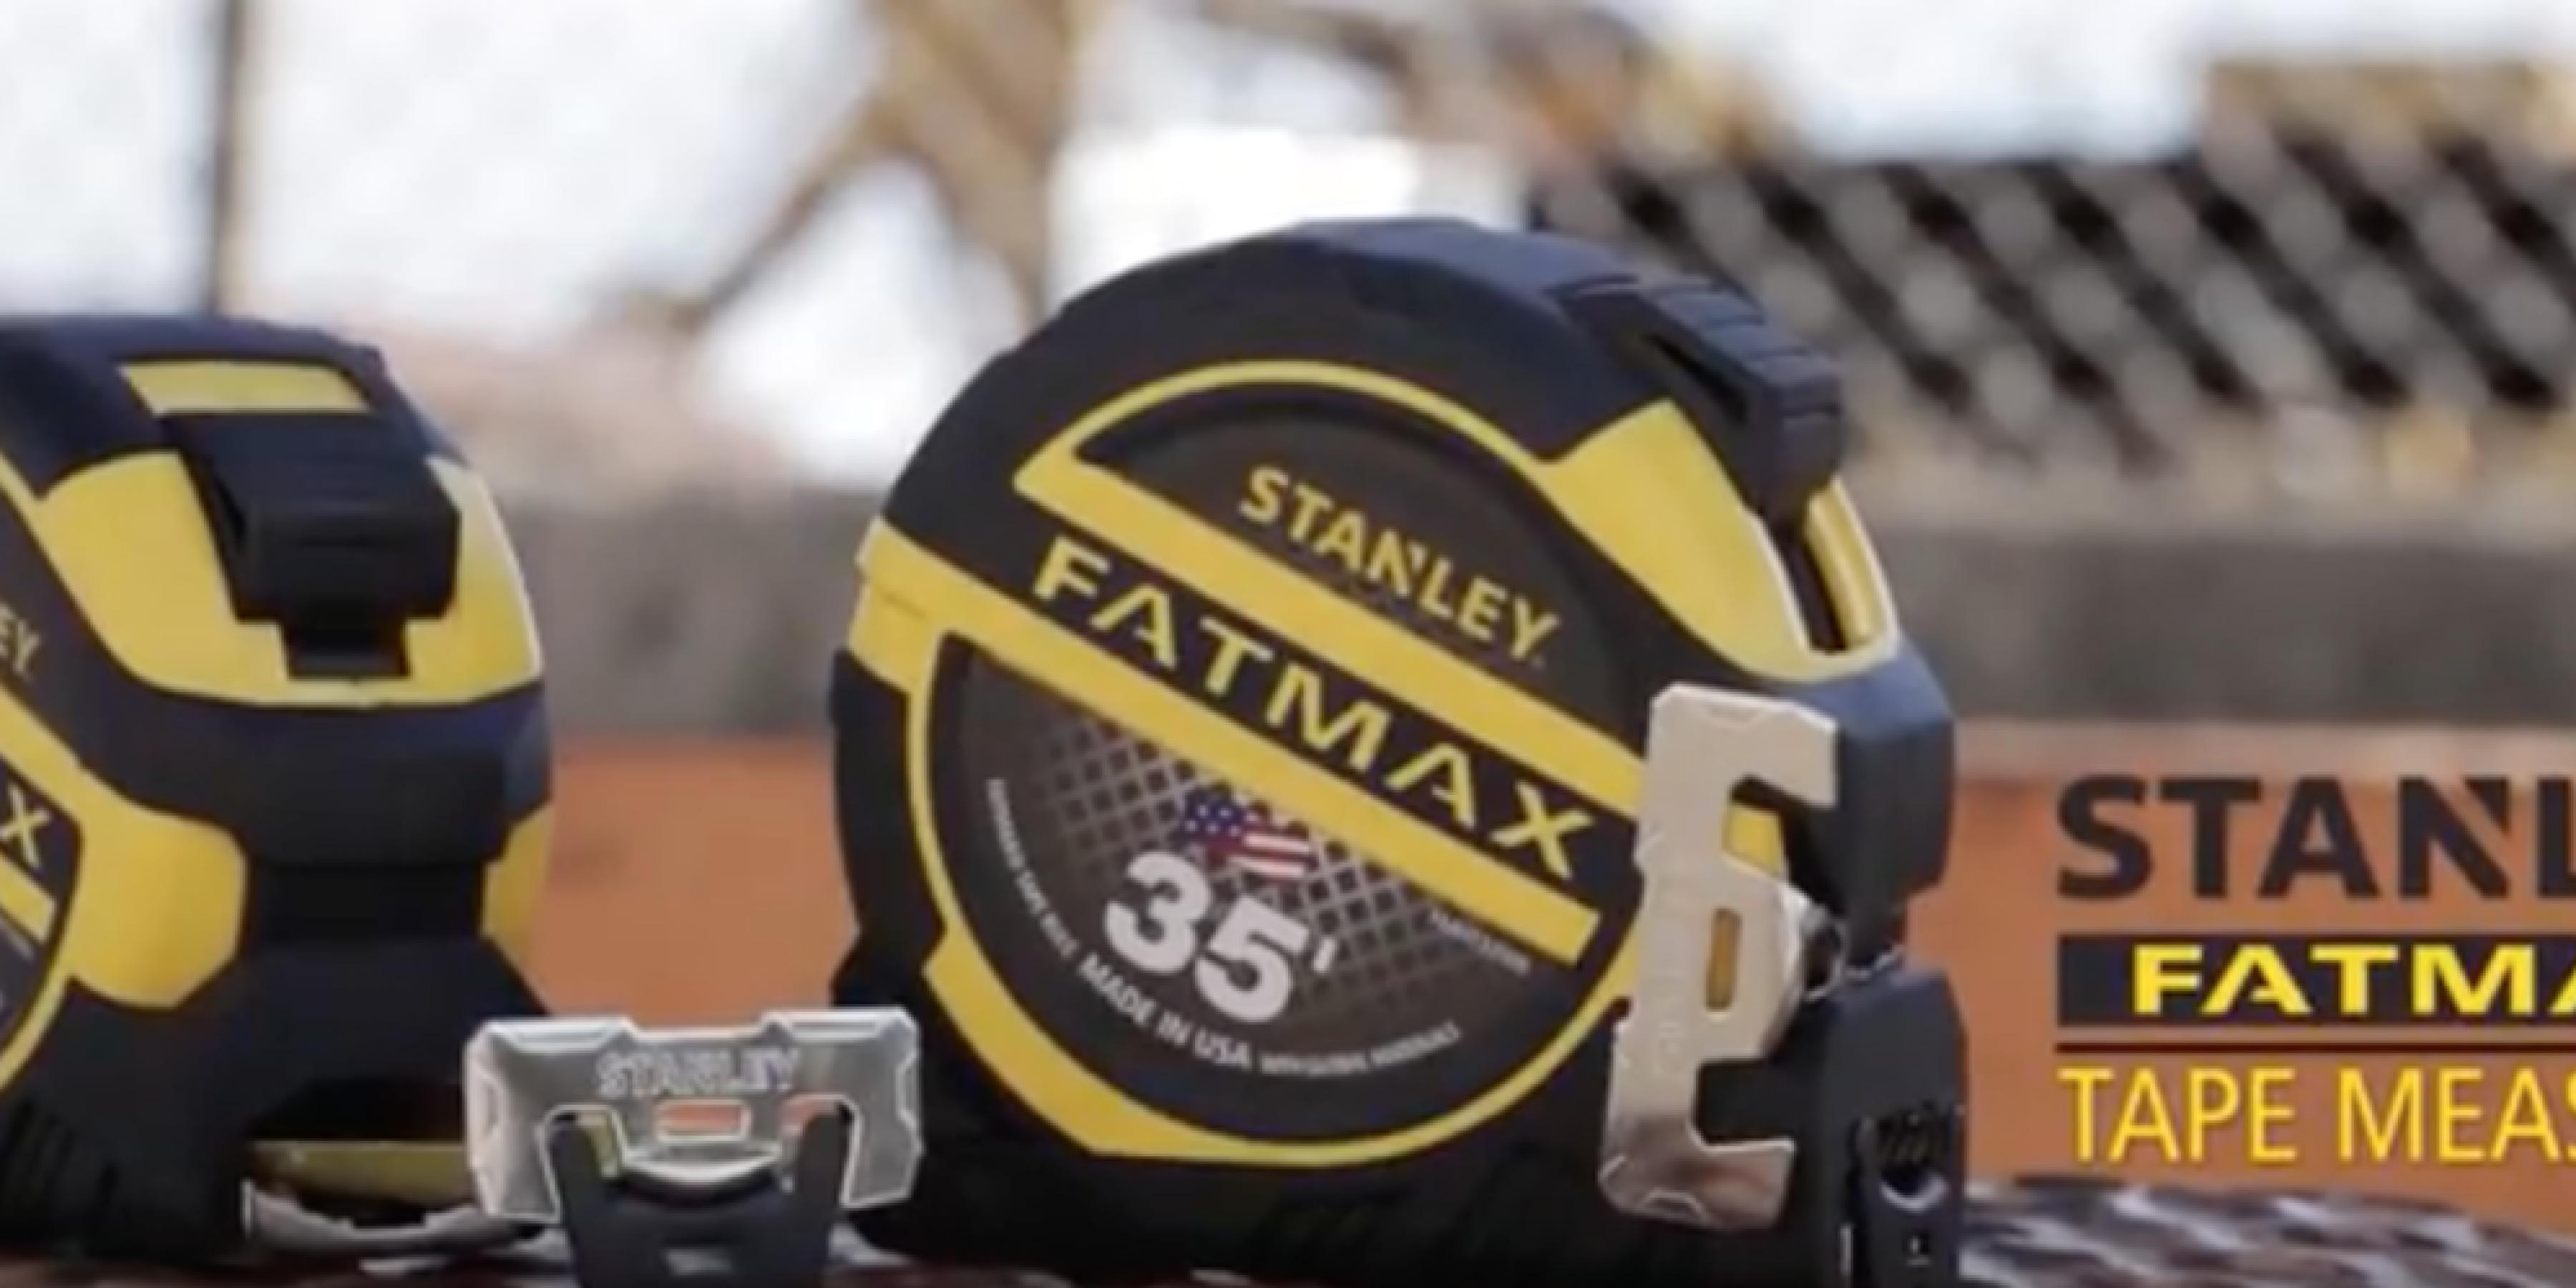 New STANLEY FATMAX® Tape Rules